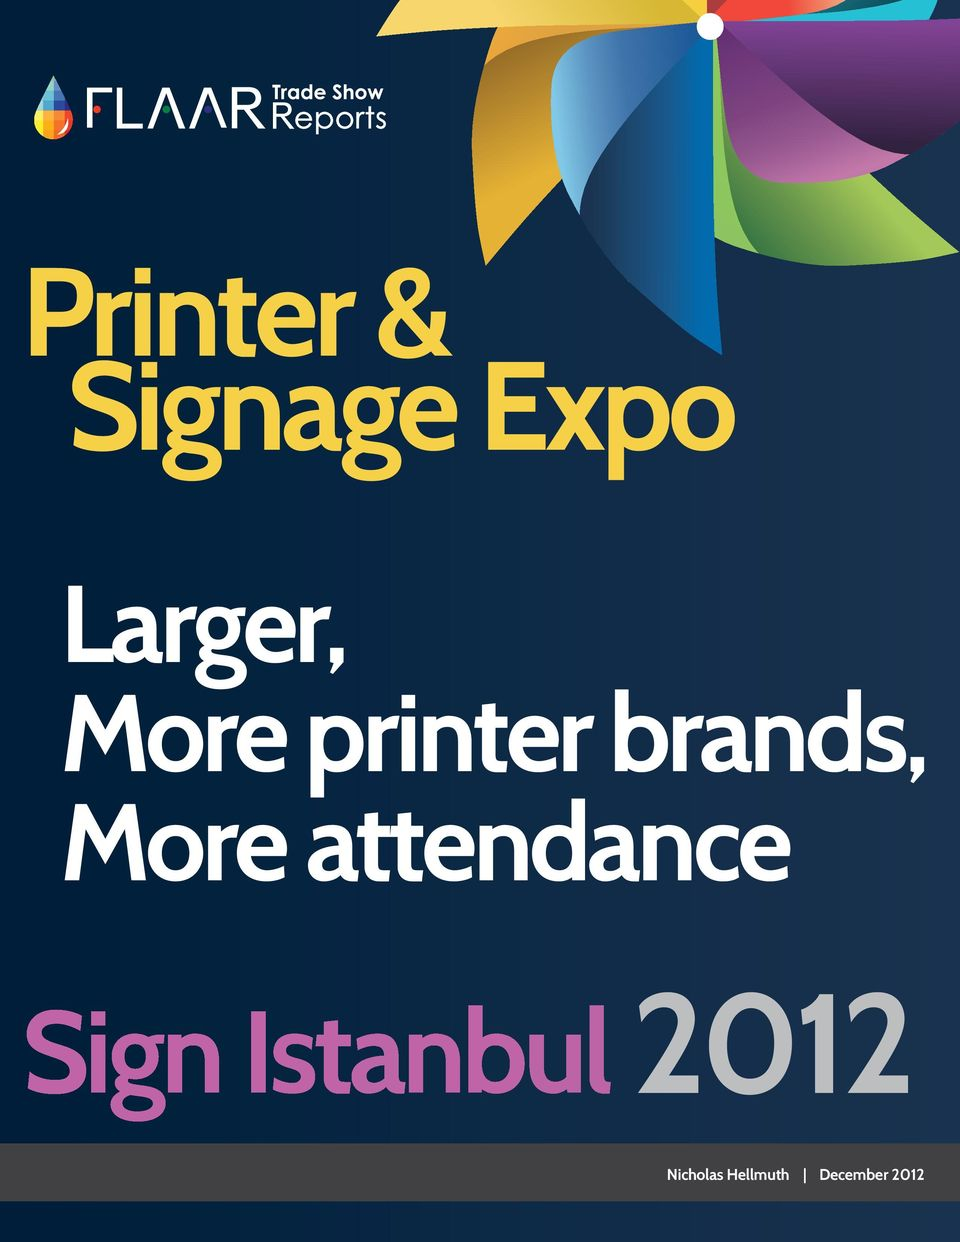 More attendance Sign Istanbul